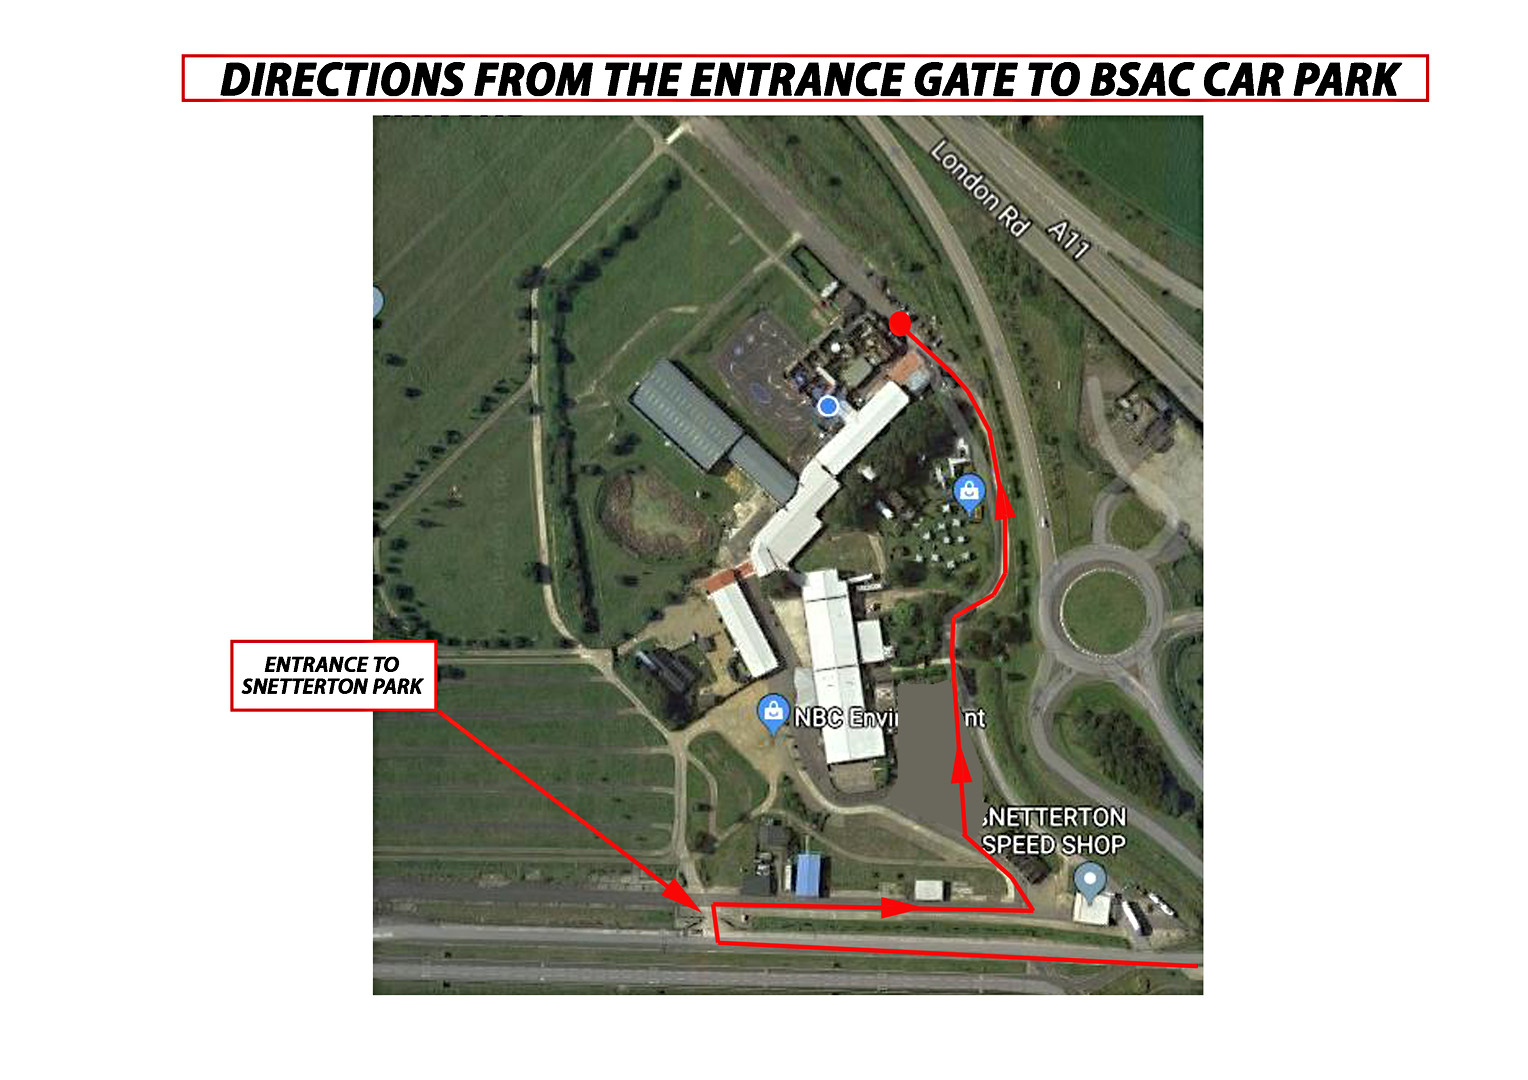 DIRECTIONS MAP FROM ENTRANCE TO CARPARK.